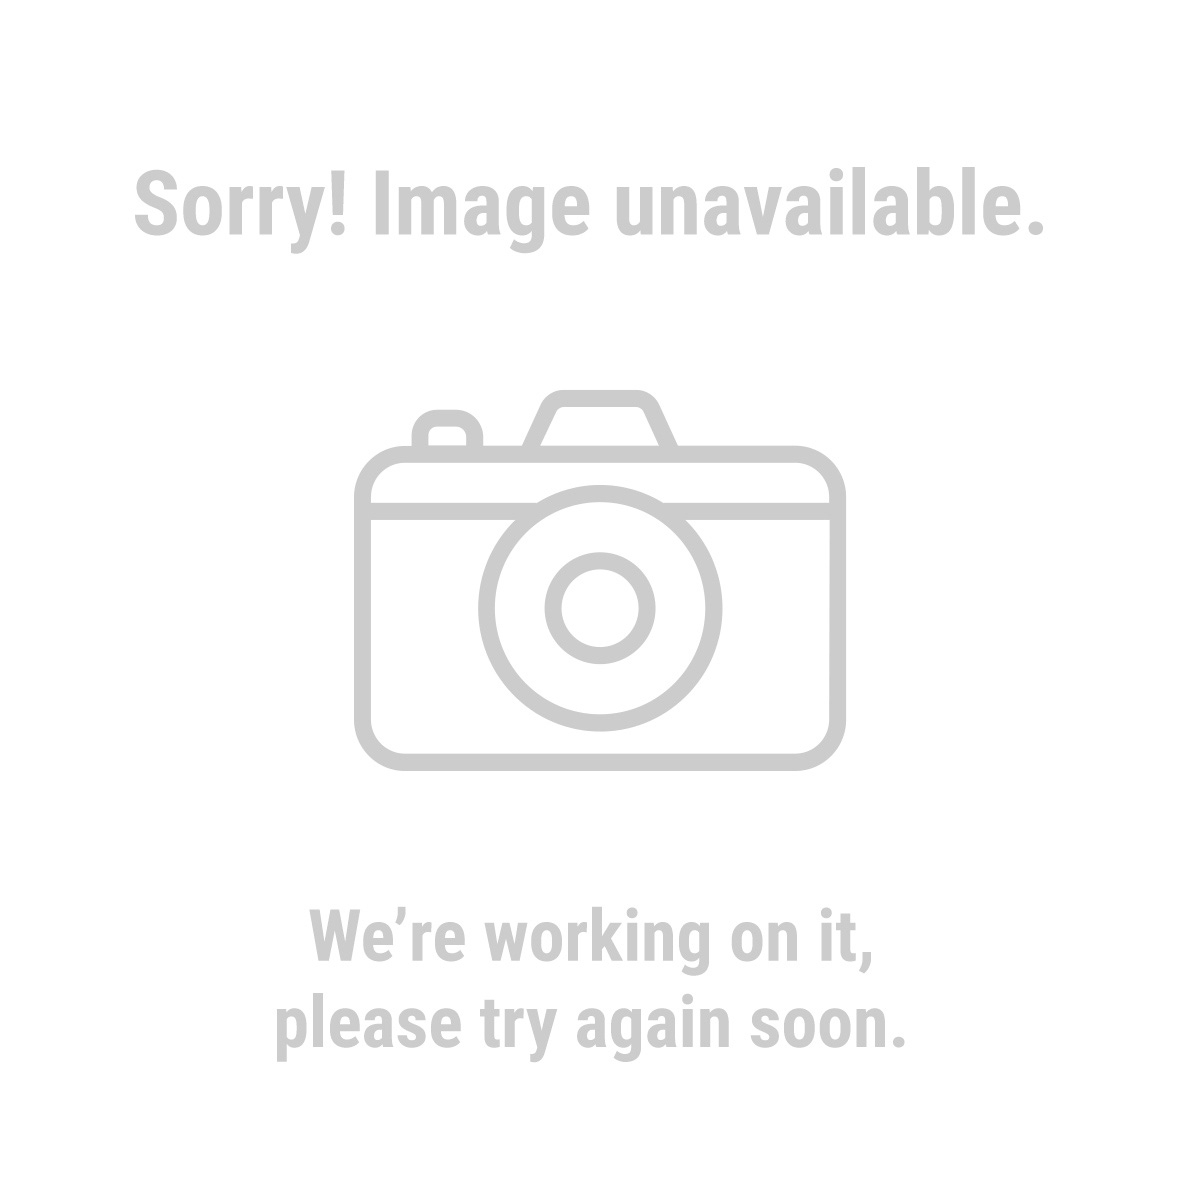 One Stop Gardens 93358 10 Ft. x 12 Ft. Greenhouse with 4 Vents